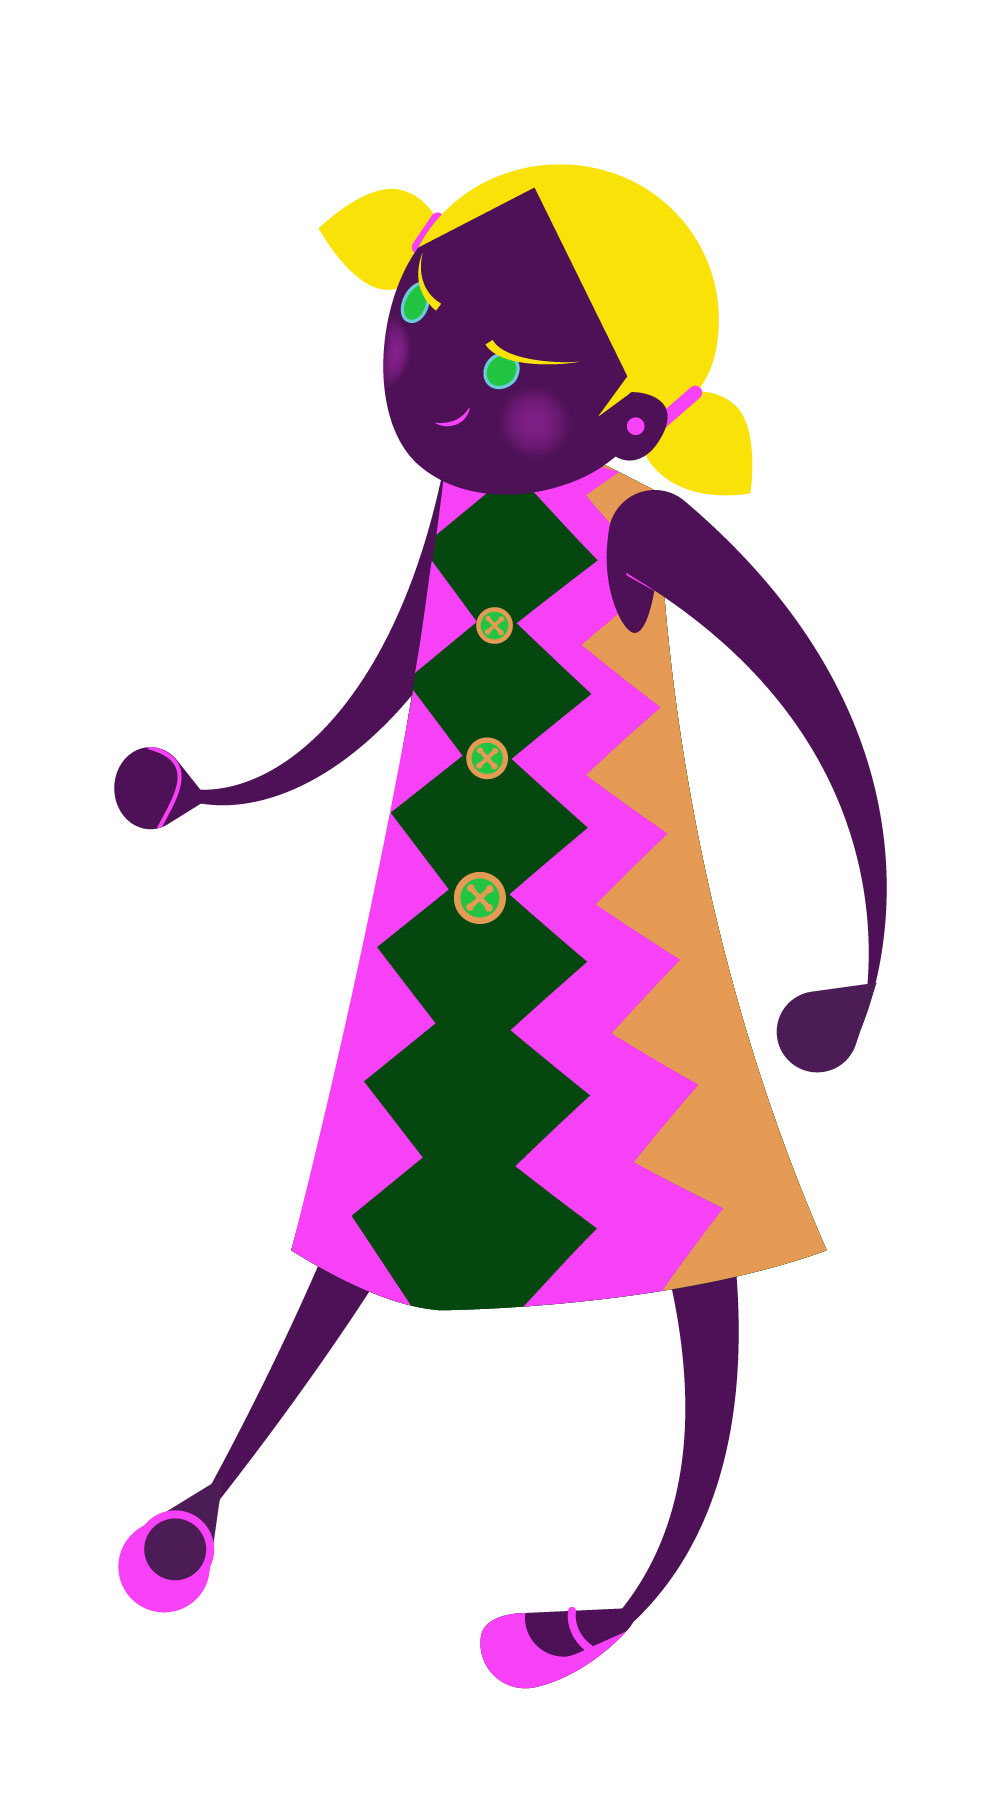 Aditi Raychoudhury. Close-up of Runaway Girl. 2013. Adobe Illustrator.